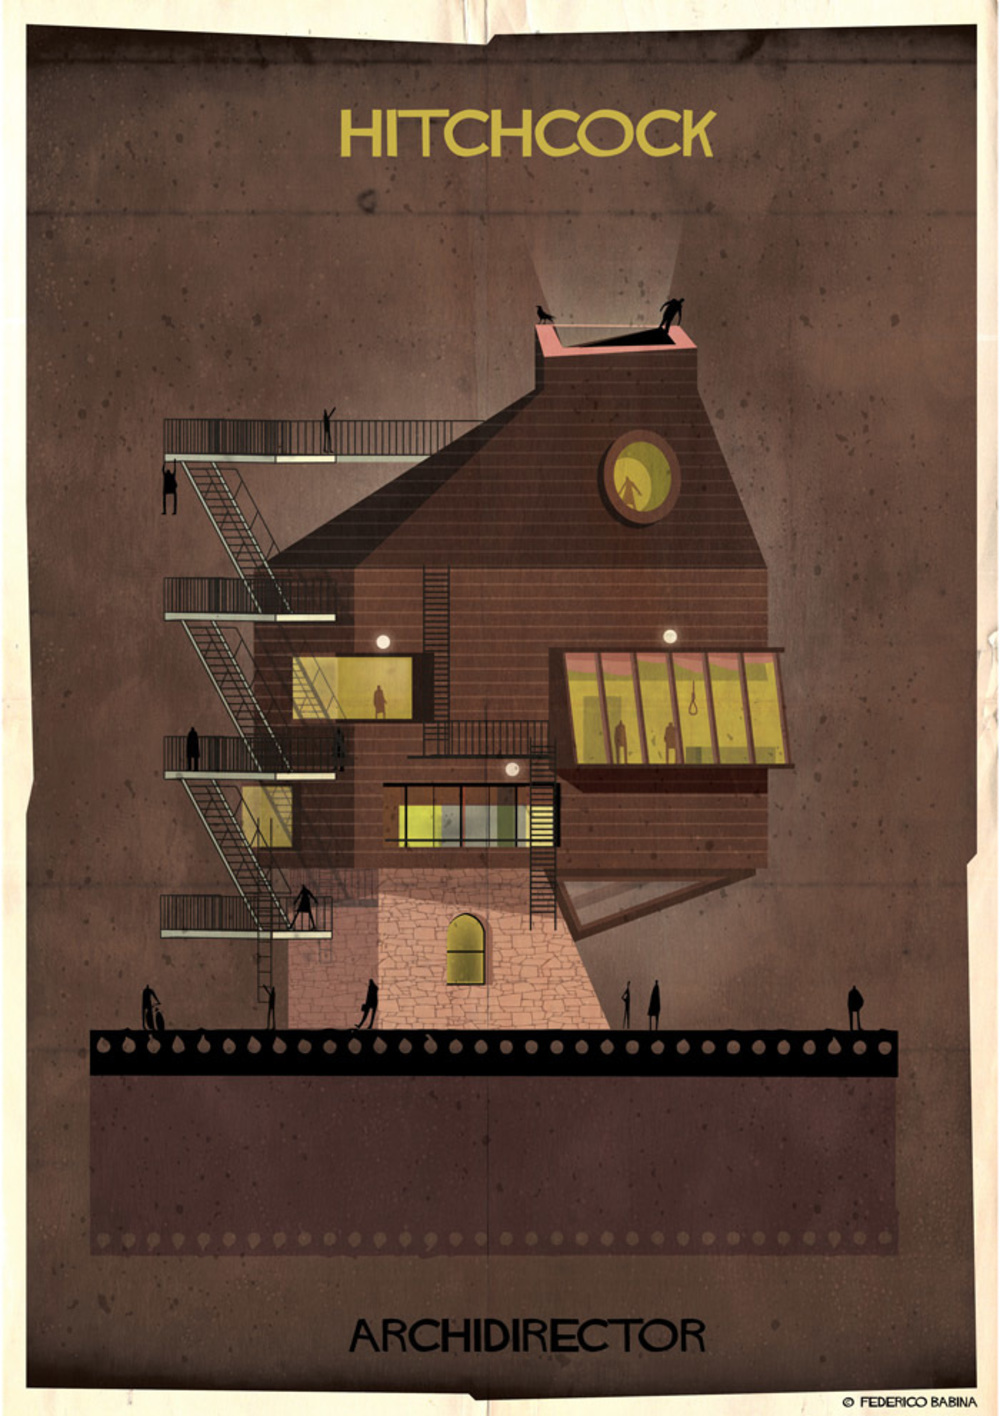 Architectural_Poster_Design_by_Federico_Babina